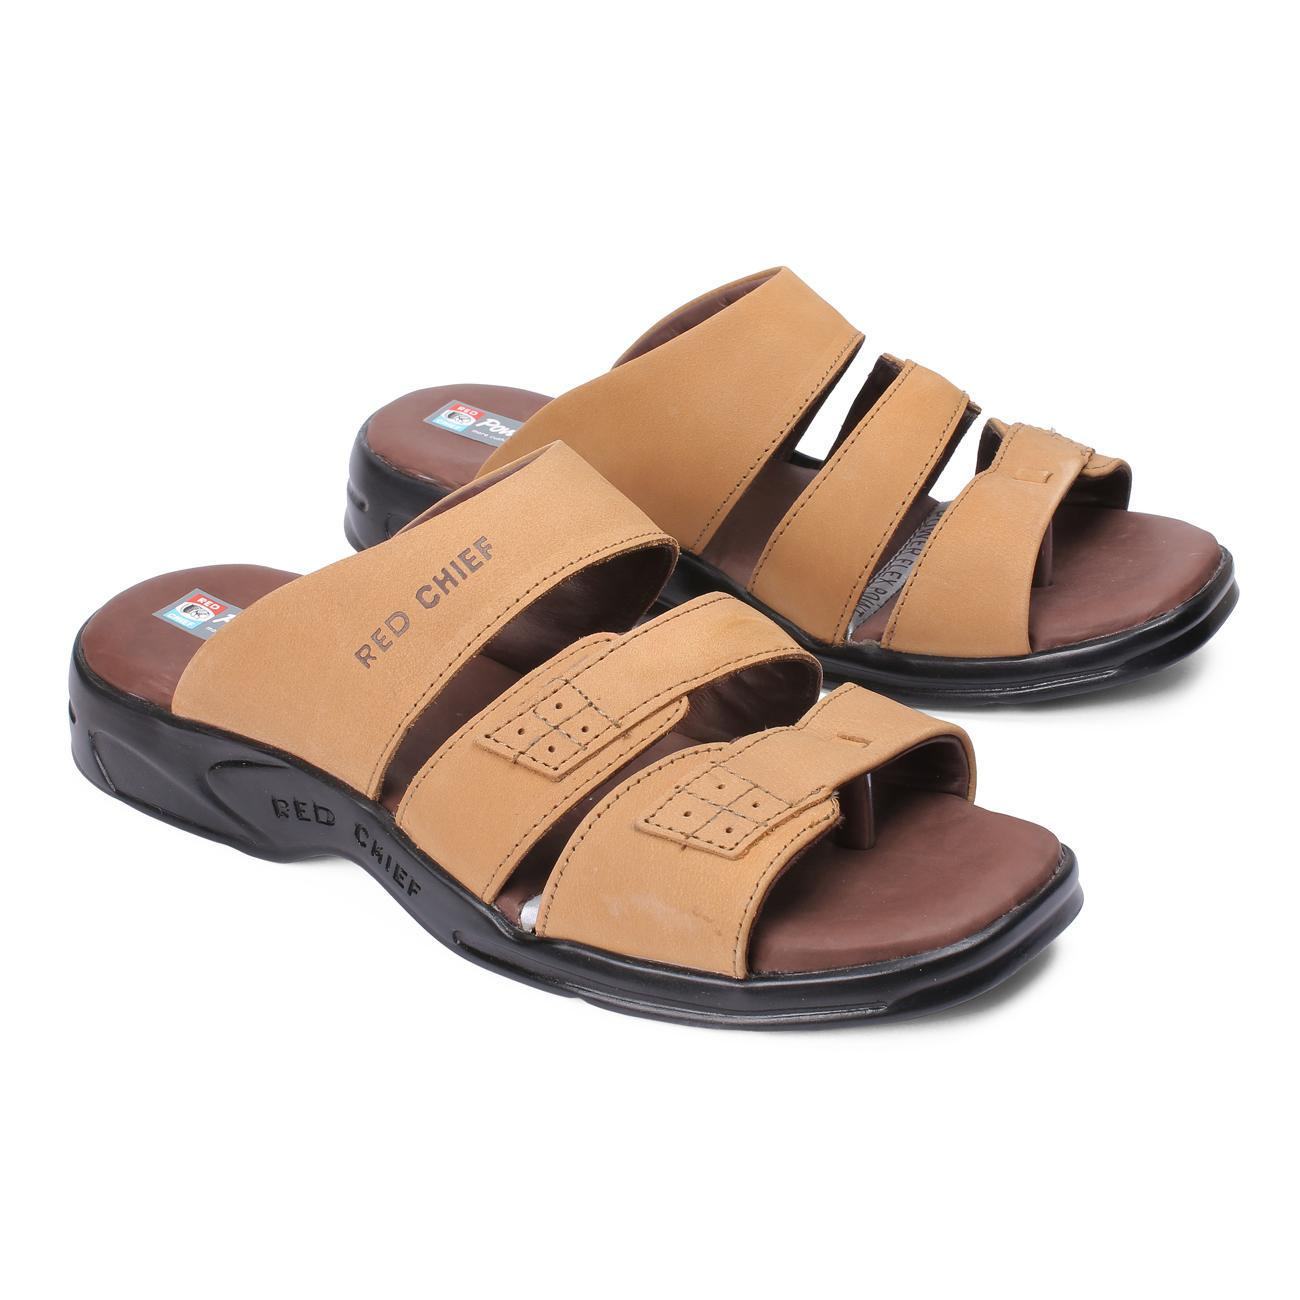 rust slip-on slippers rubber sole